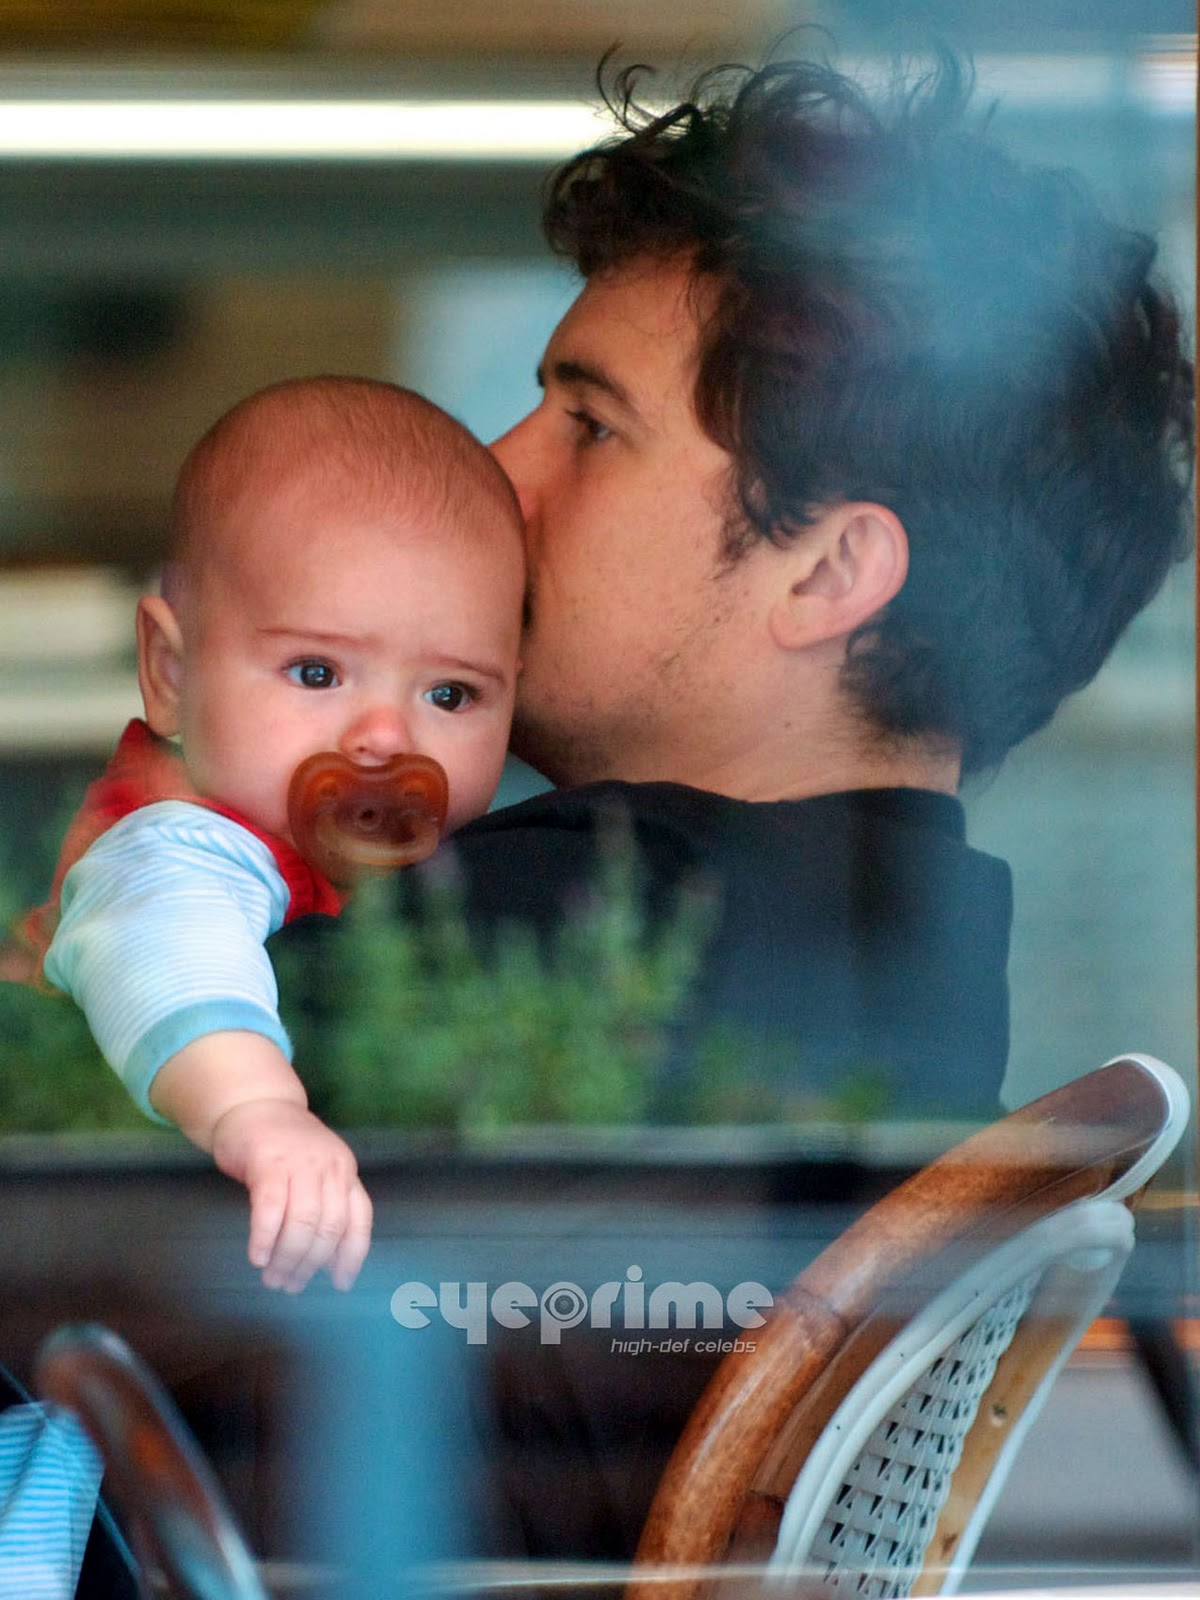 http://2.bp.blogspot.com/-THficaCN-a8/TrO6xoVdO9I/AAAAAAAAARk/uVoAYnD1m8w/s1600/Orlando-Bloom-Cuddles-Up-With-Baby-Flynn-at-a-Cafe-in-Hollywood-June-1-orlando-bloom-22531614-1275-1700.jpg